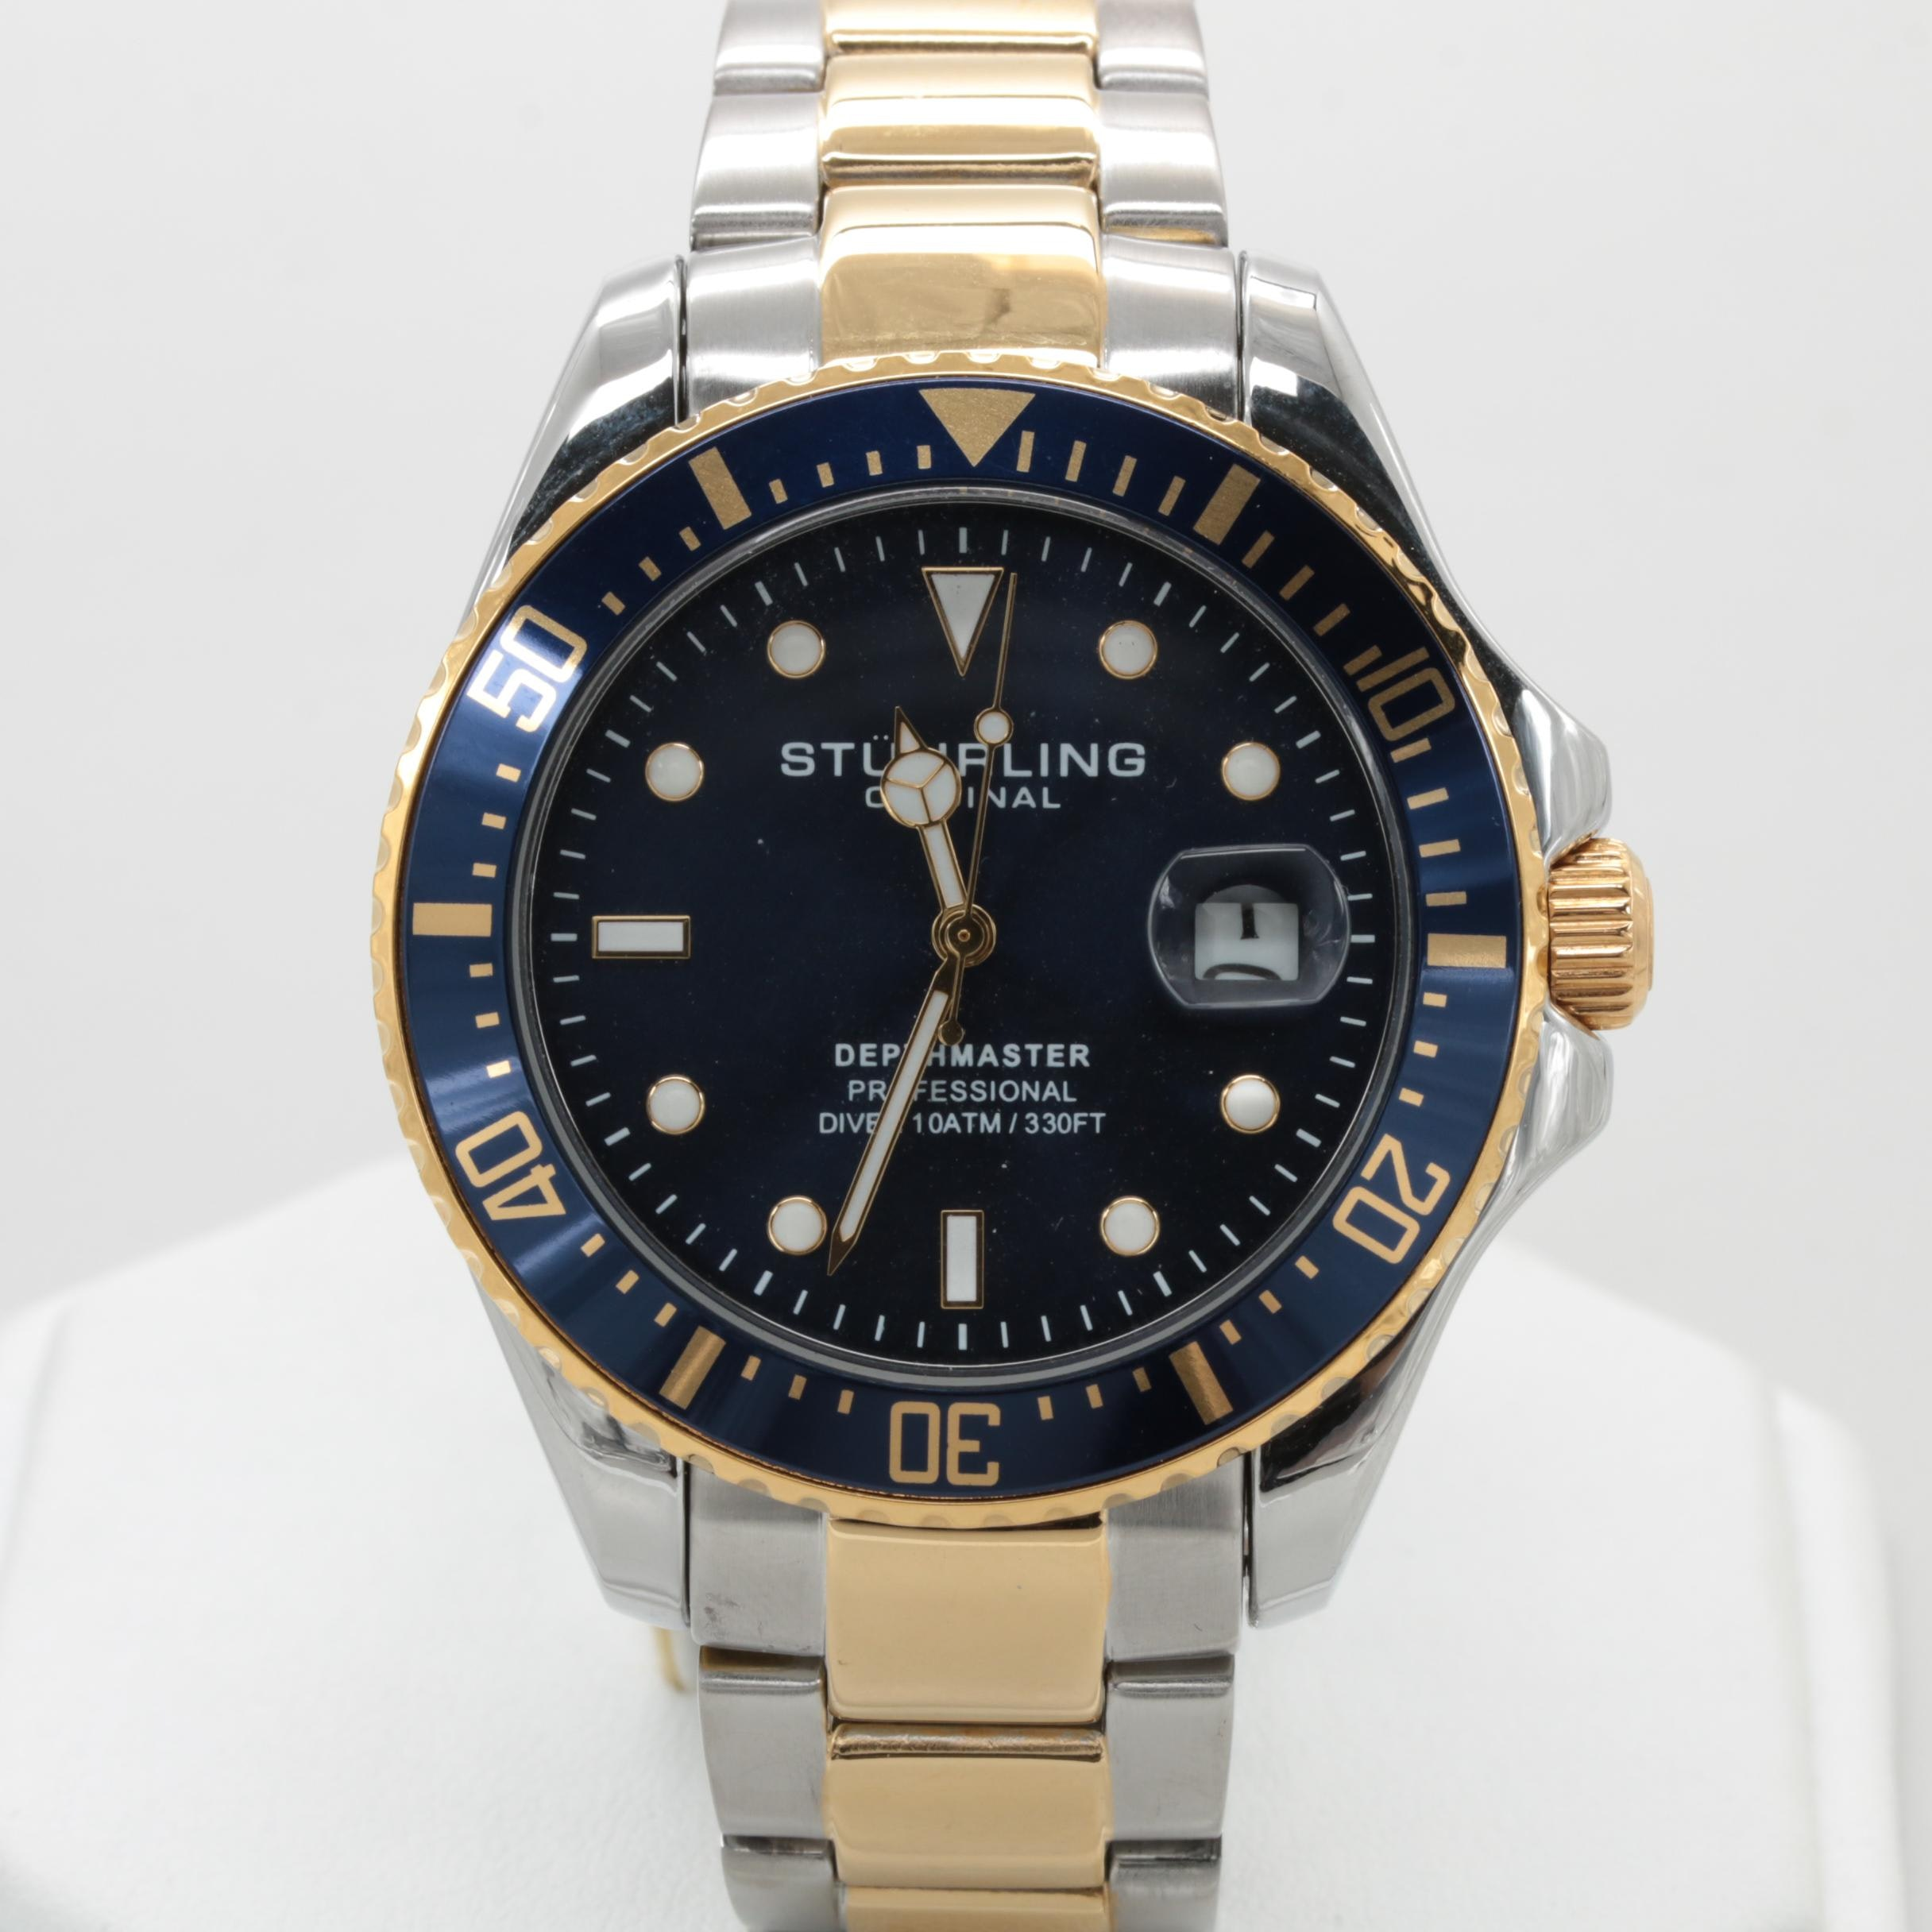 Stuhrling Two Tone Stainless Steel Blue Dial Wristwatch with Date Window